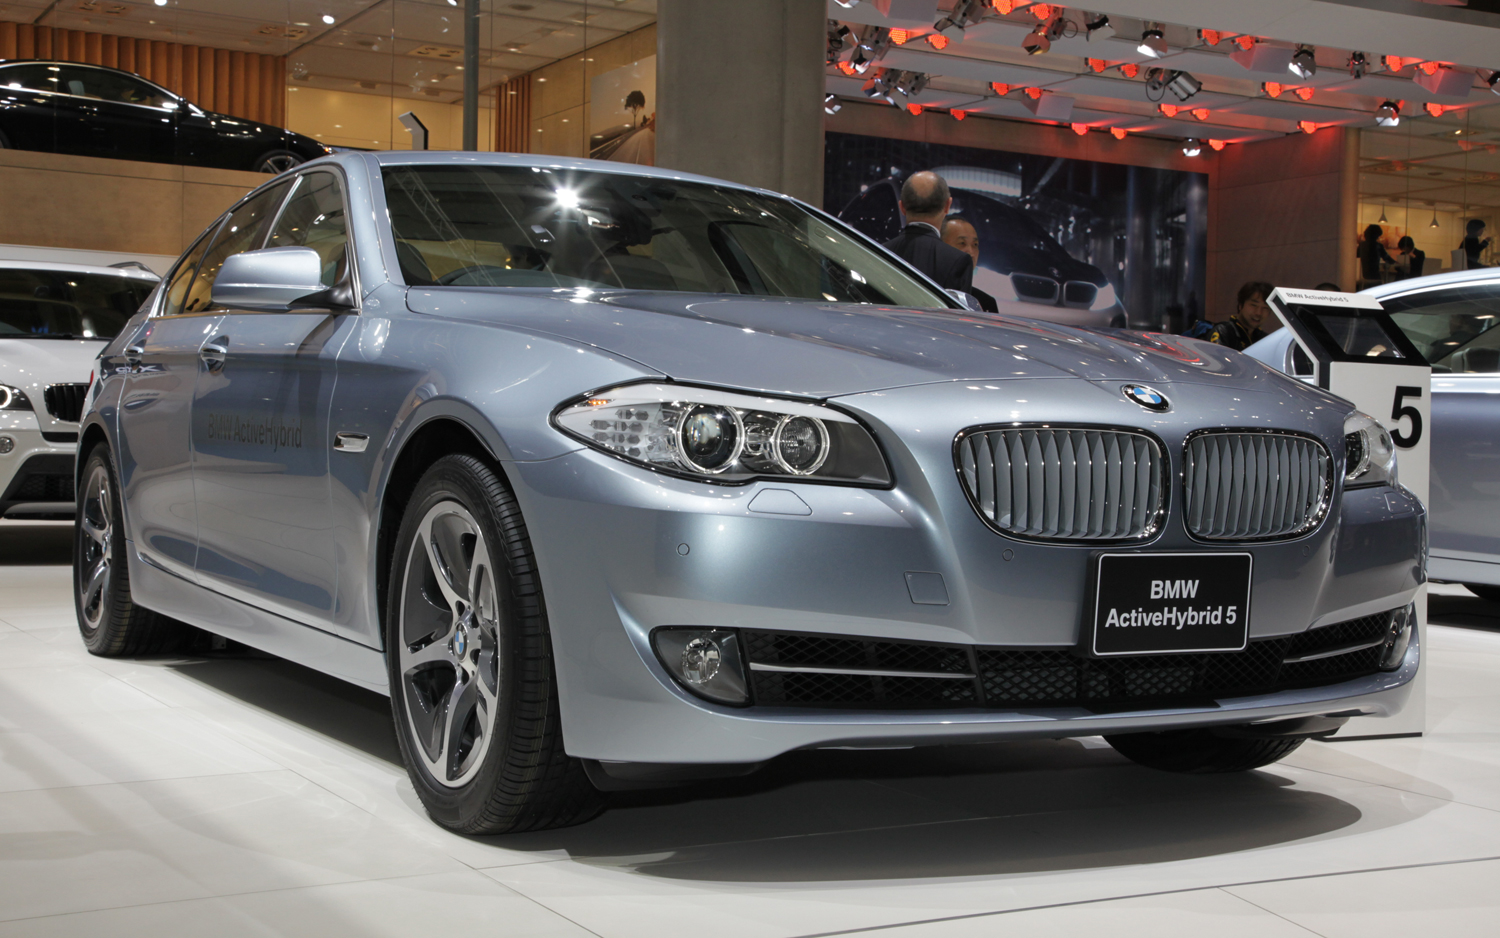 2014 Bmw Activehybrid 5 #11